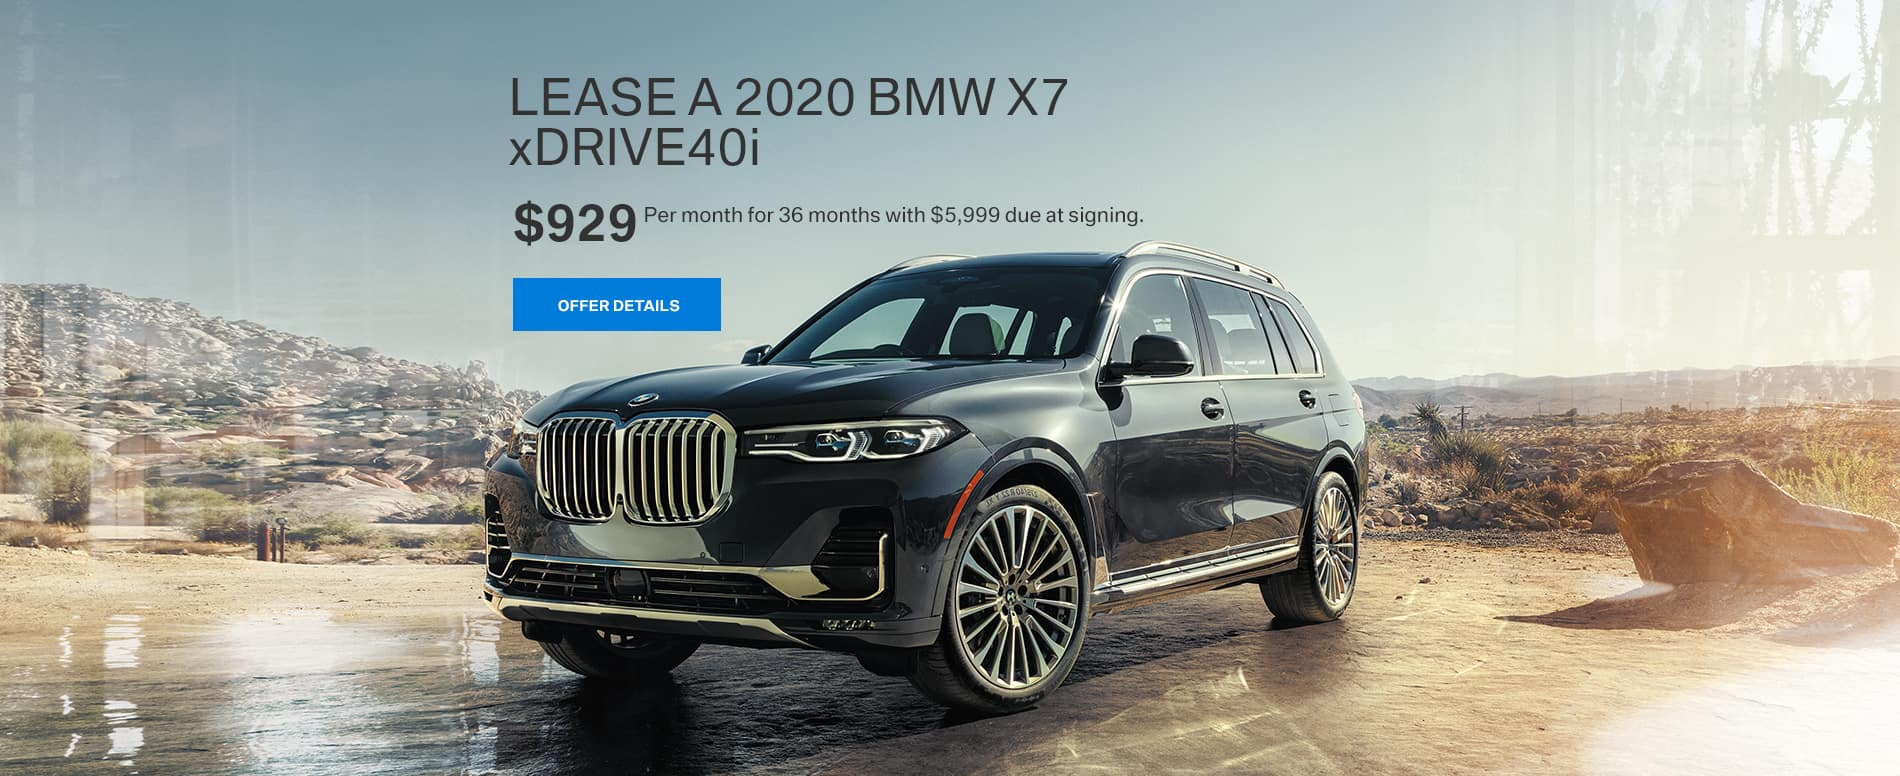 Lease a 2020 BMW X7 xDRIVE40i for $929 per month at BMW of Fort Walton Beach